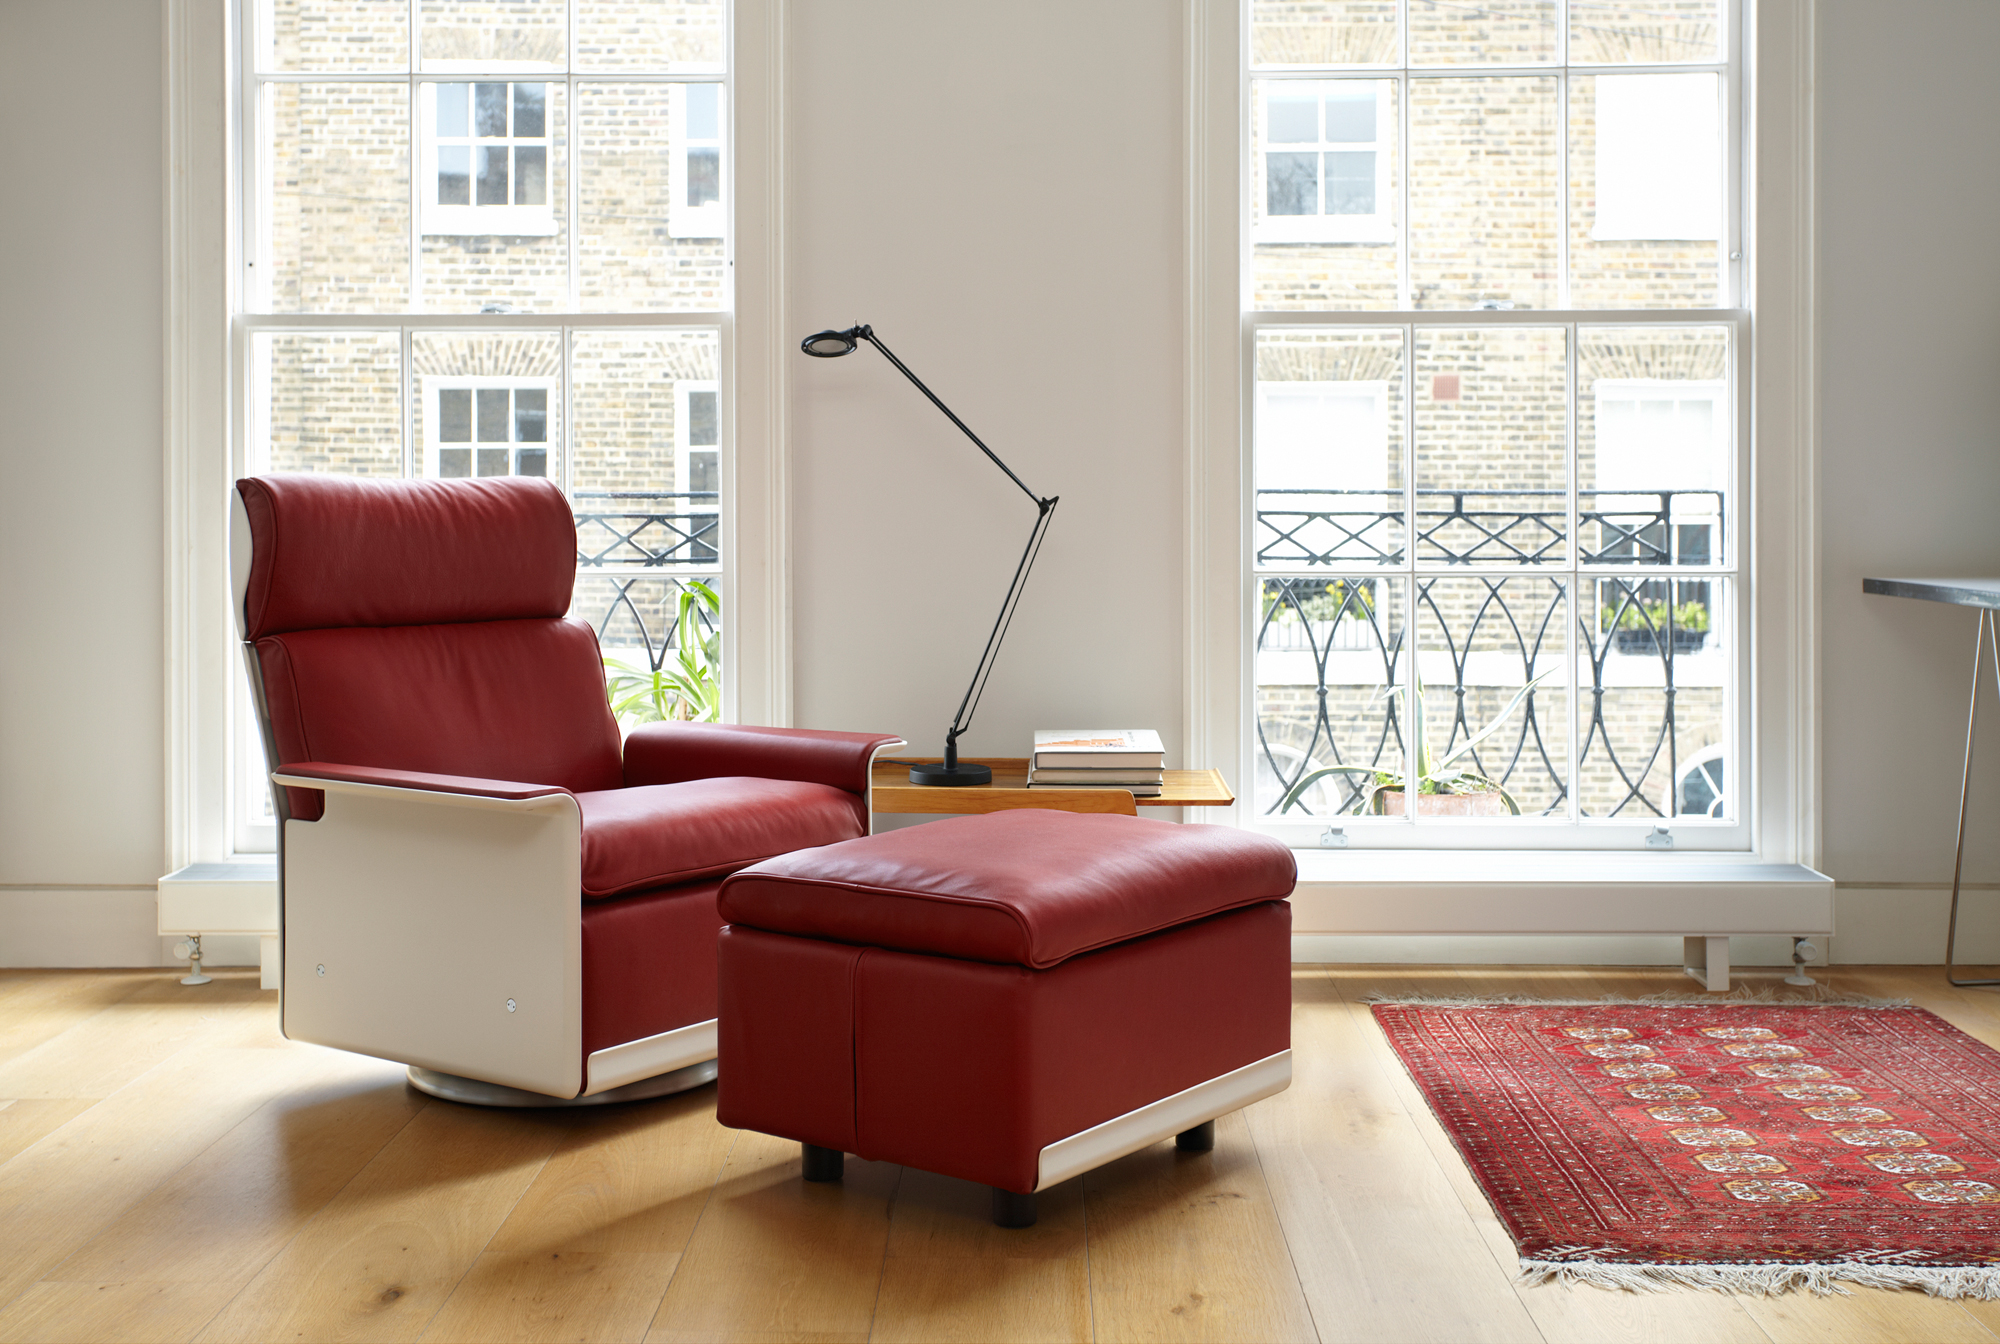 The Ultimate Lounge Chair Is Back on Sale  WIRED